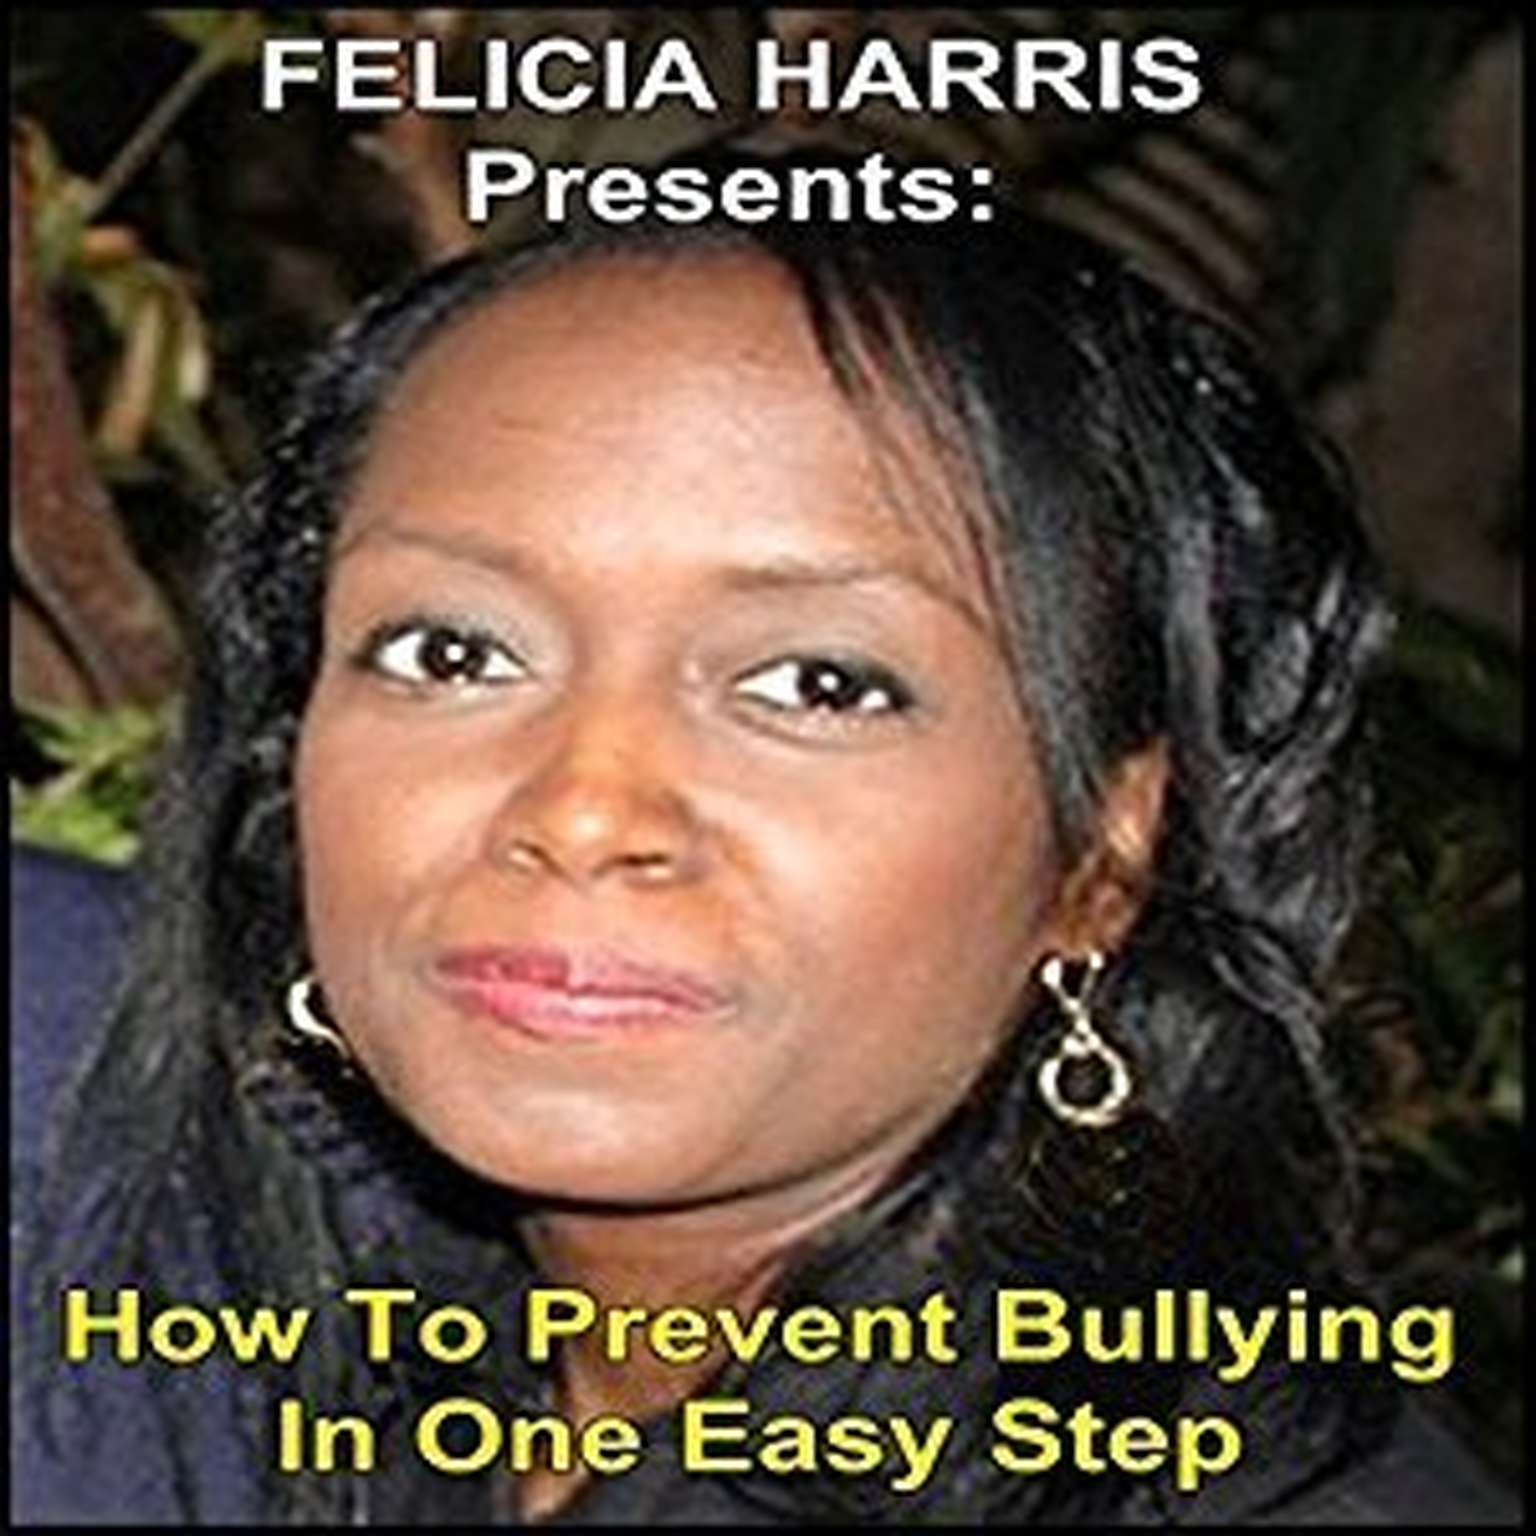 Printable Felicia Harris Presents: How to Prevent Bullying In One Easy Step Audiobook Cover Art